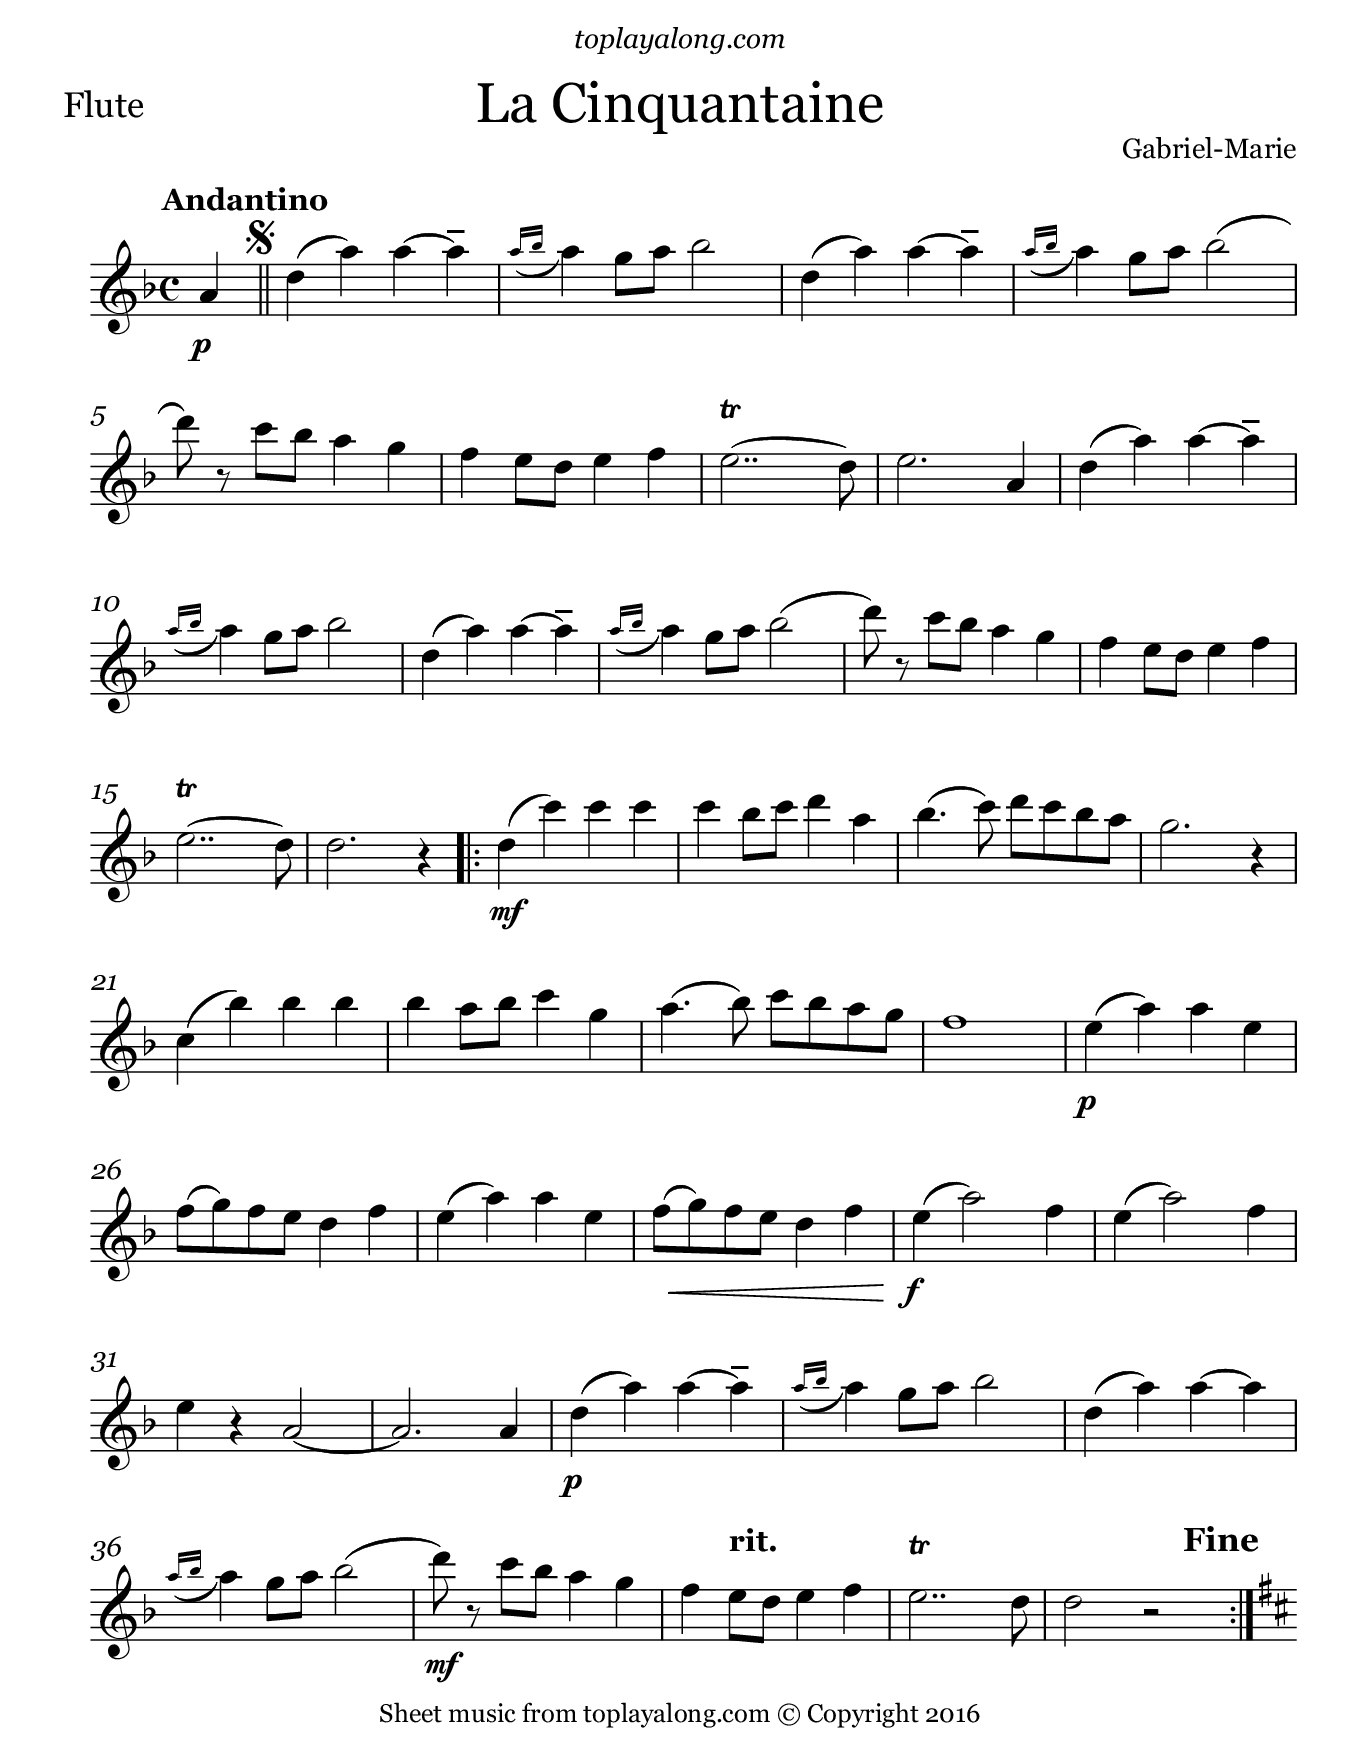 La Cinquantaine by Gabriel-Marie. Sheet music for Flute, page 1.